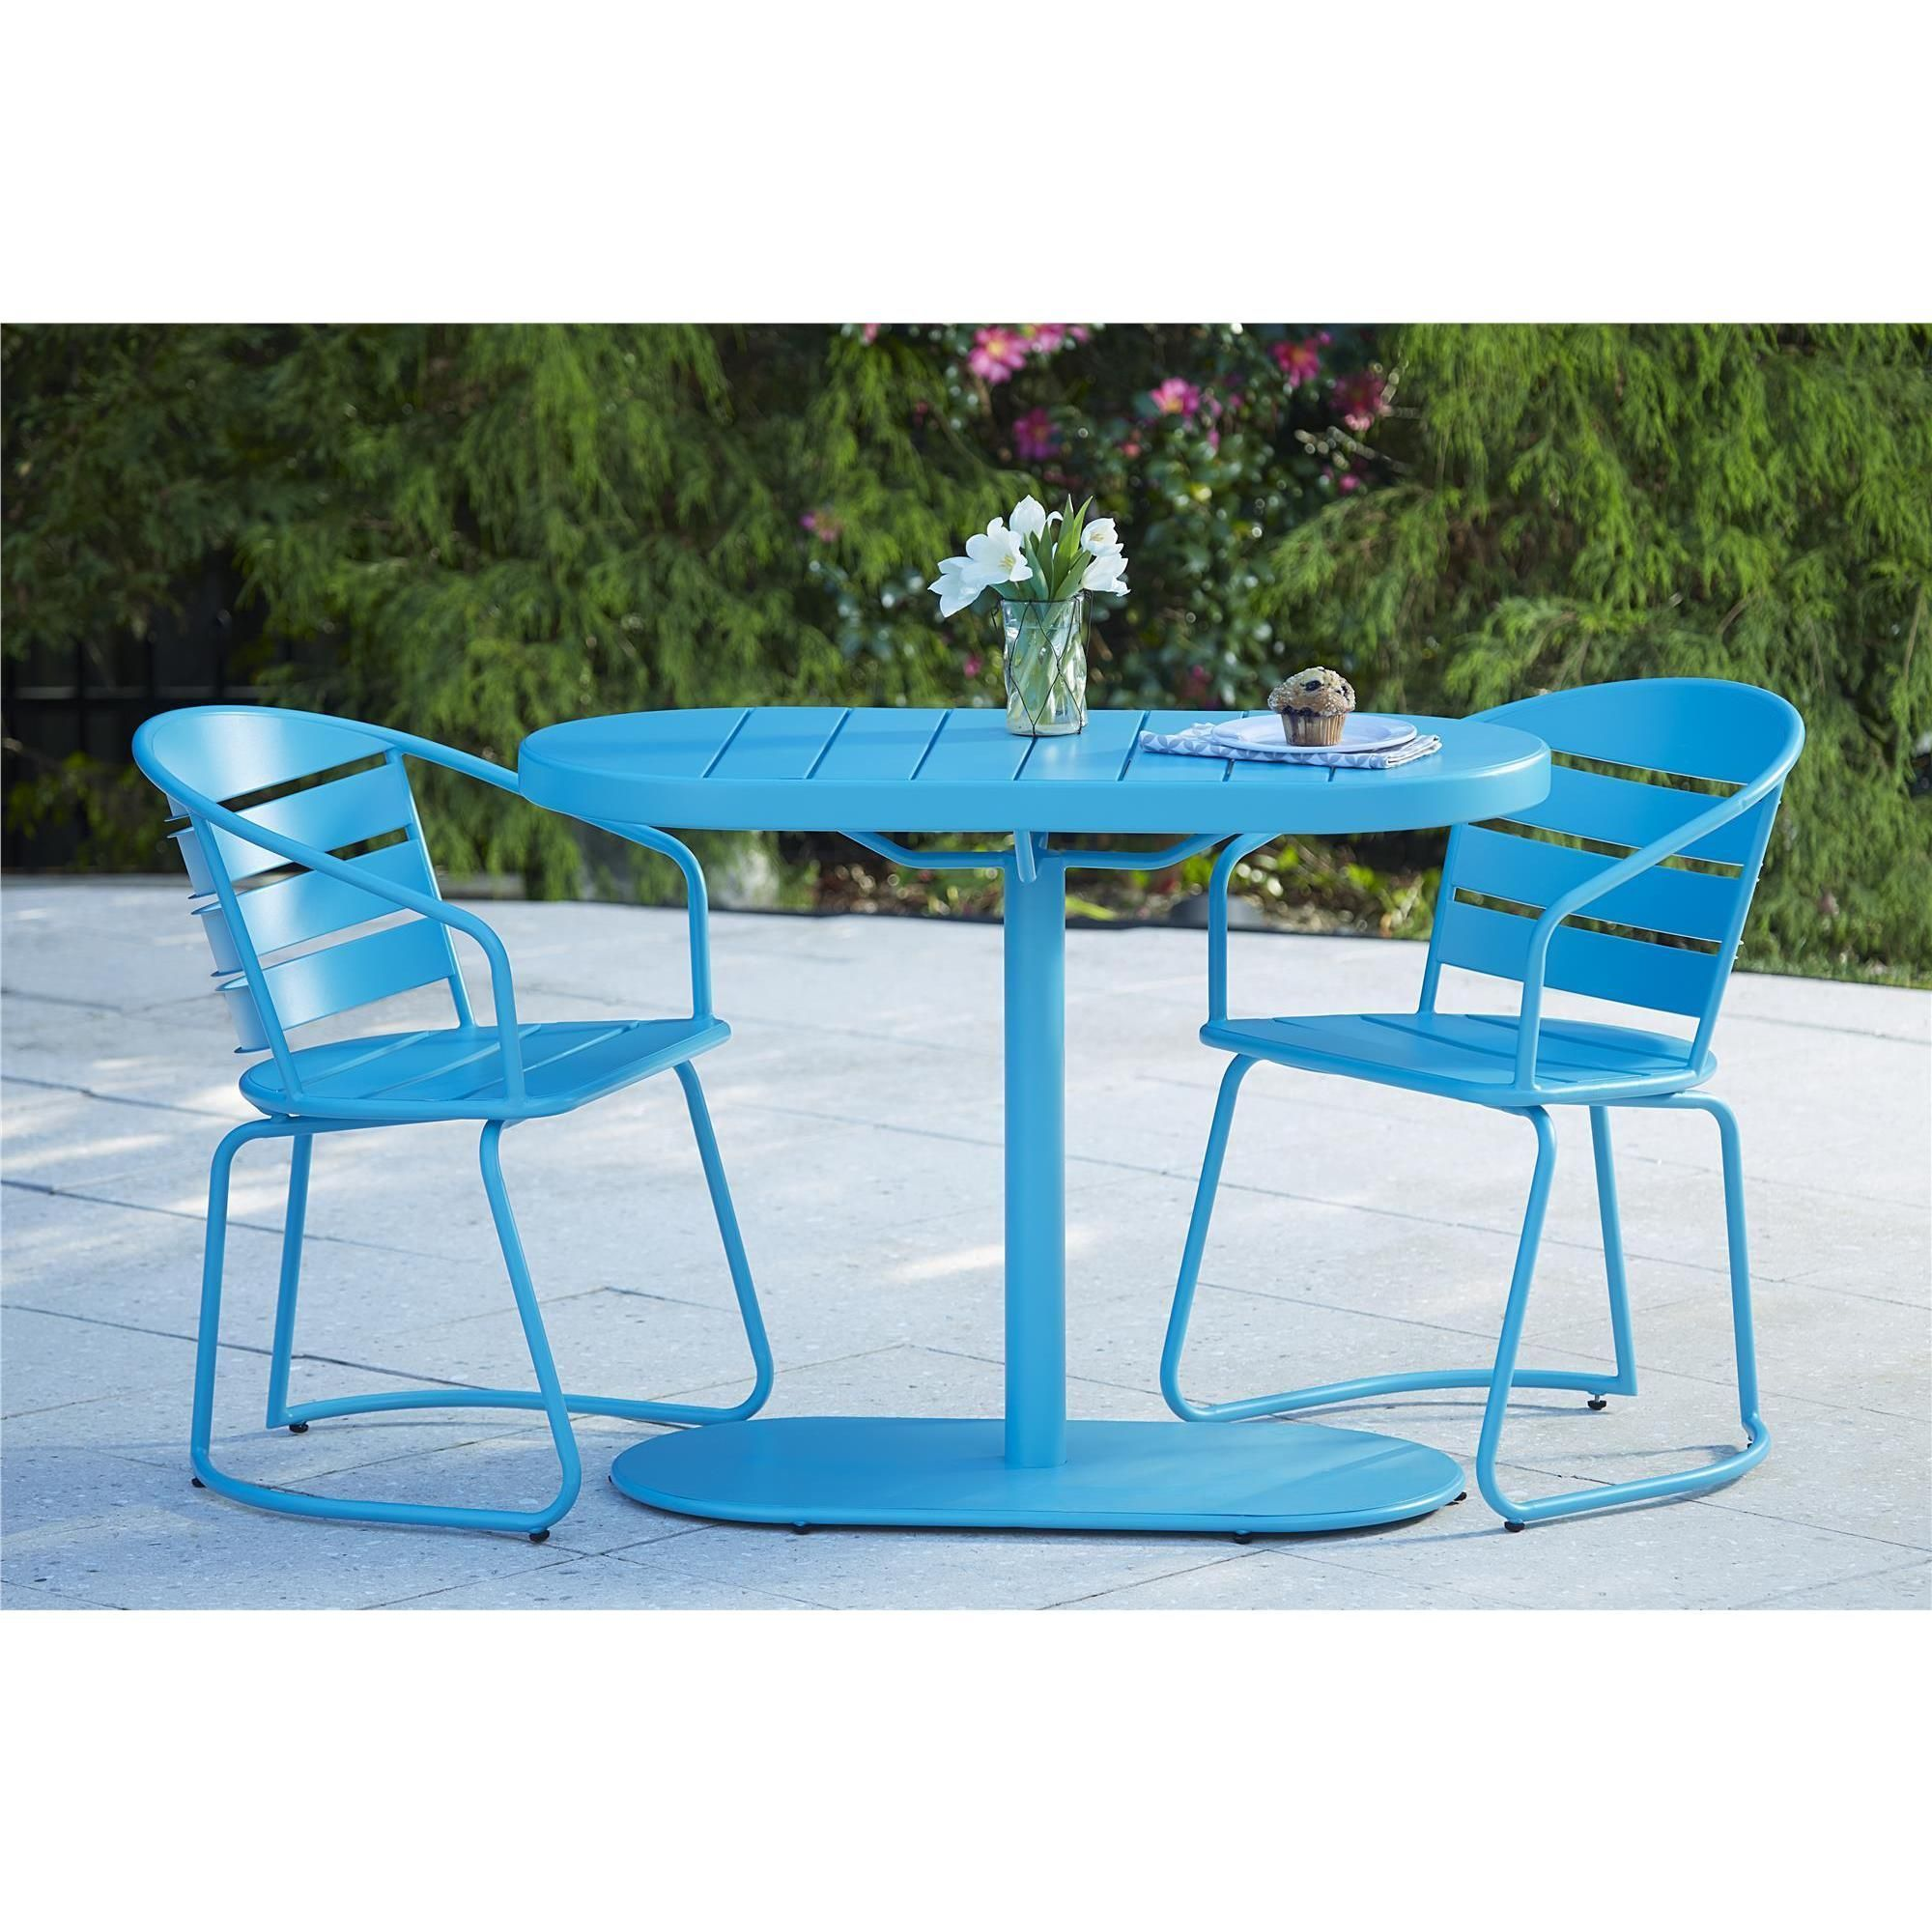 Avenue Greene Cosco Blue Outdoor Steel Nesting Bistro Patio Set